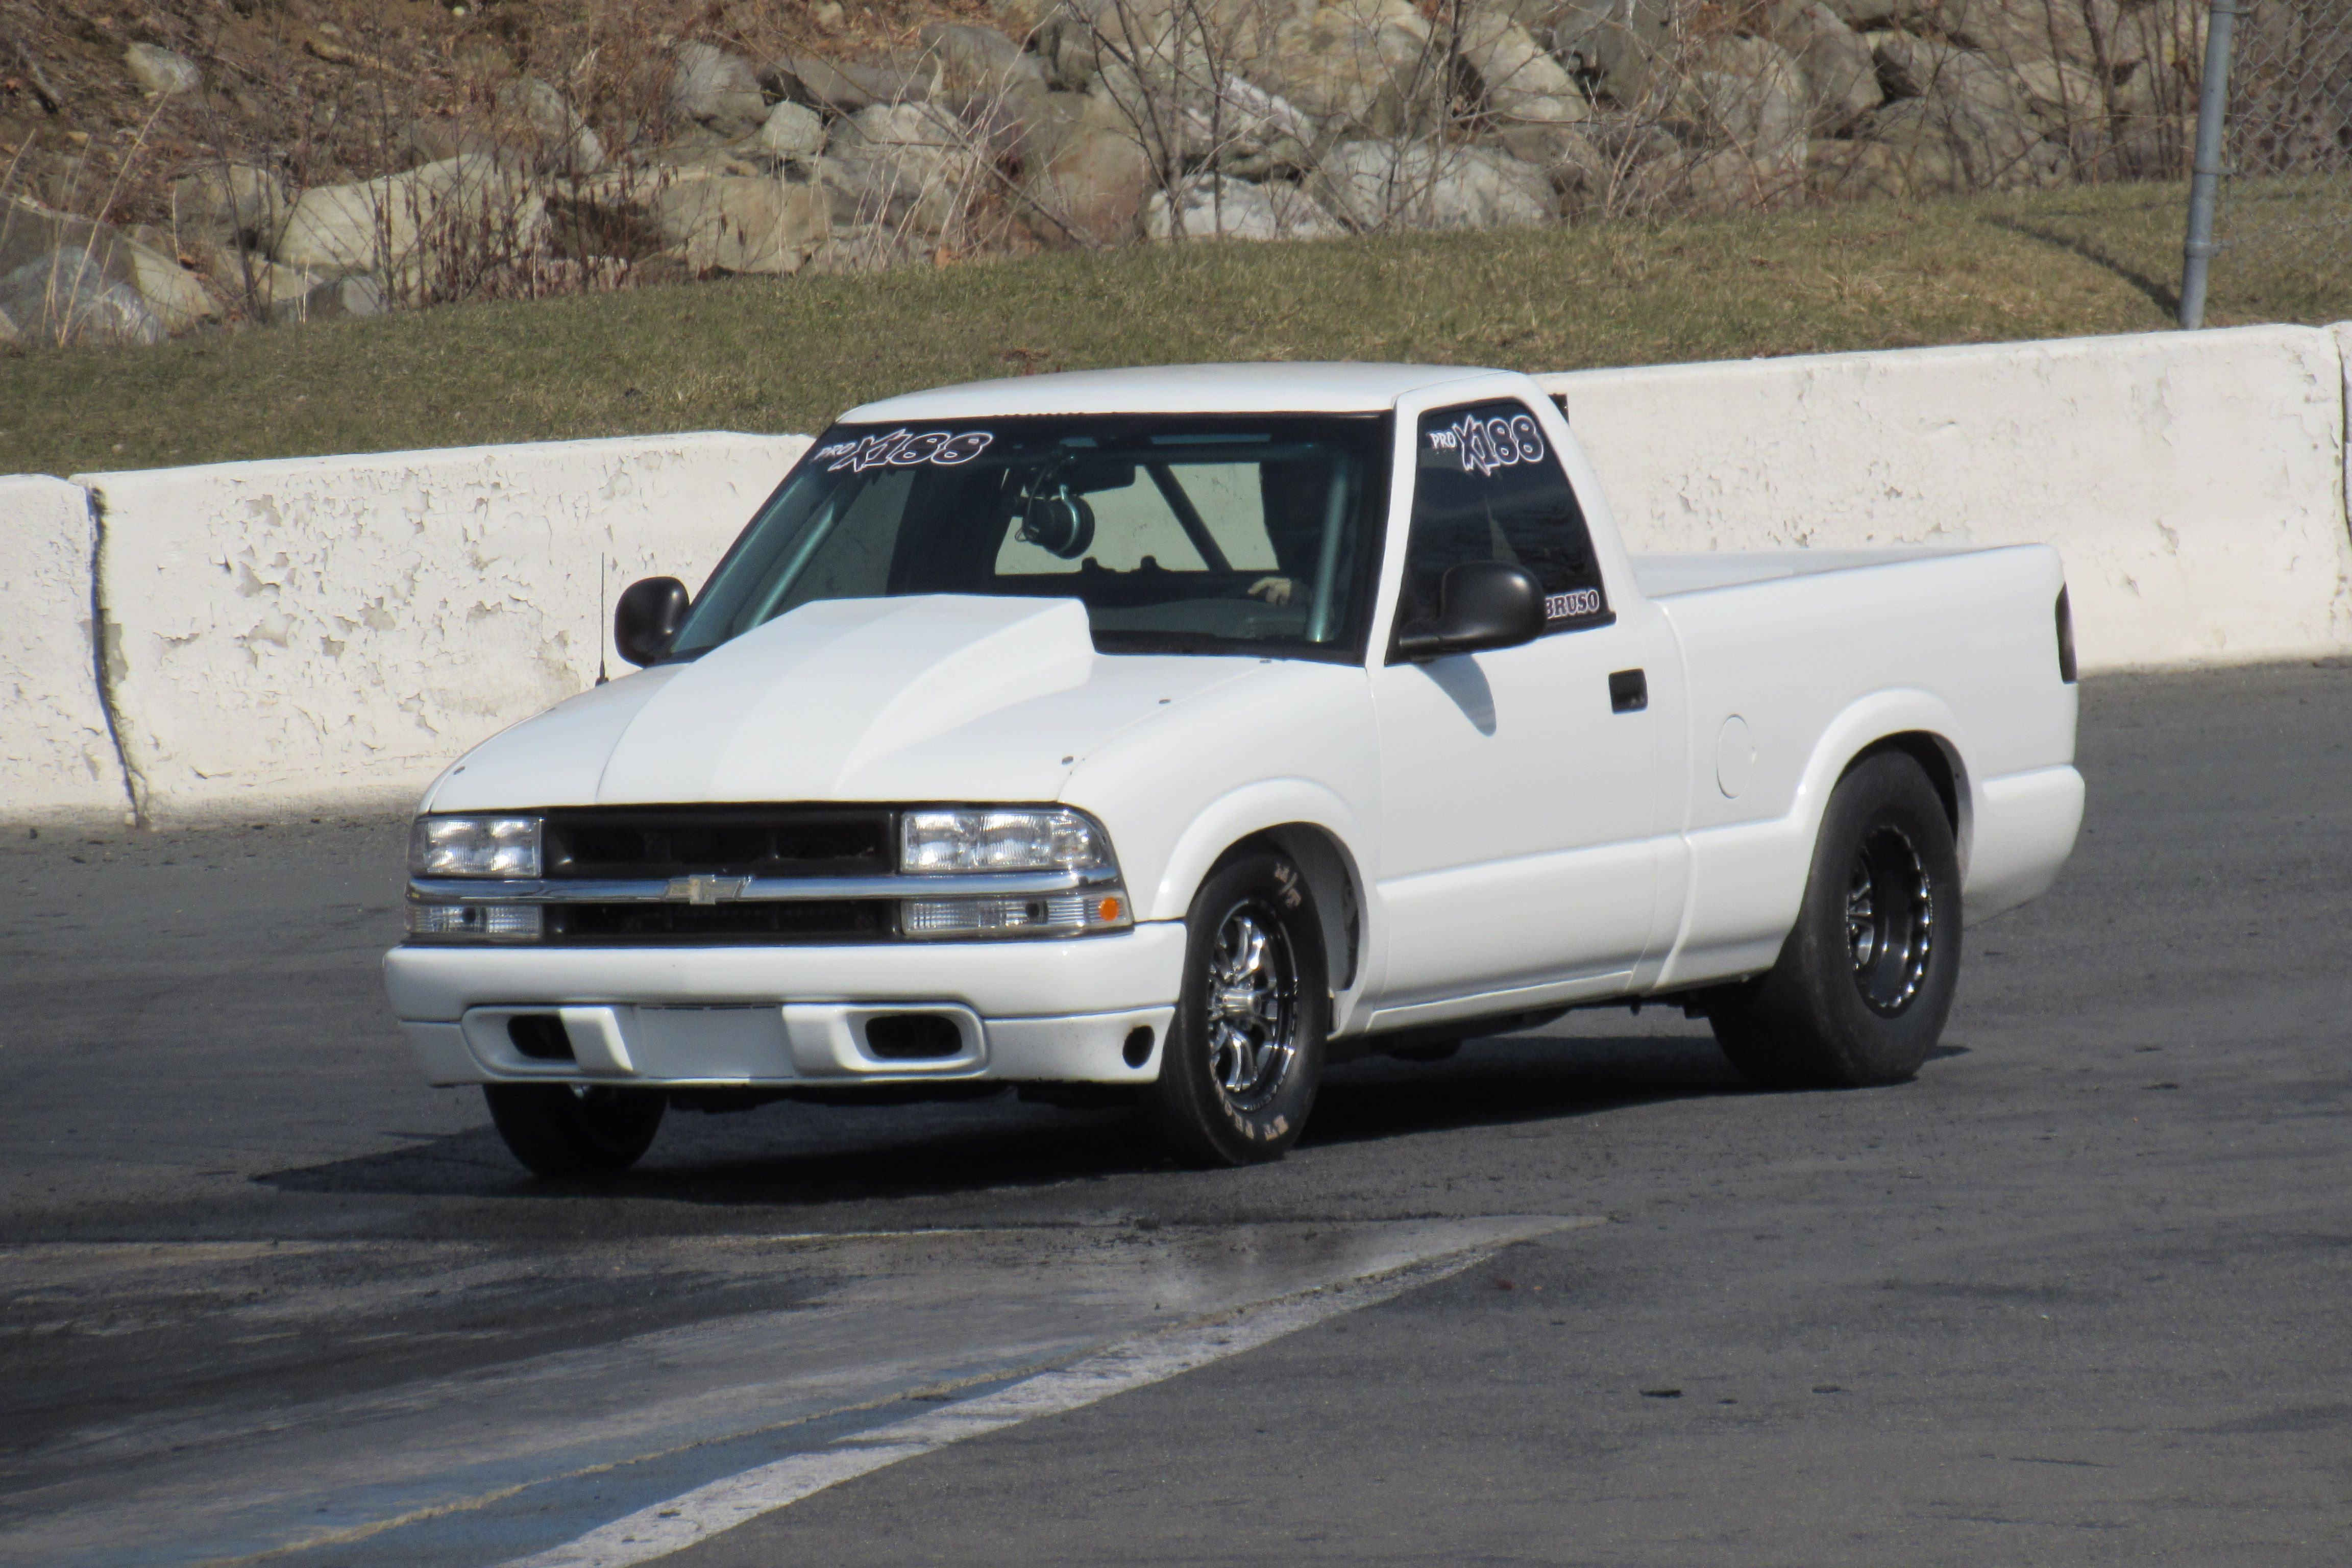 Chevy S10 Pick Up Truck Drag Racing At Lebanon Valley Chevy S10